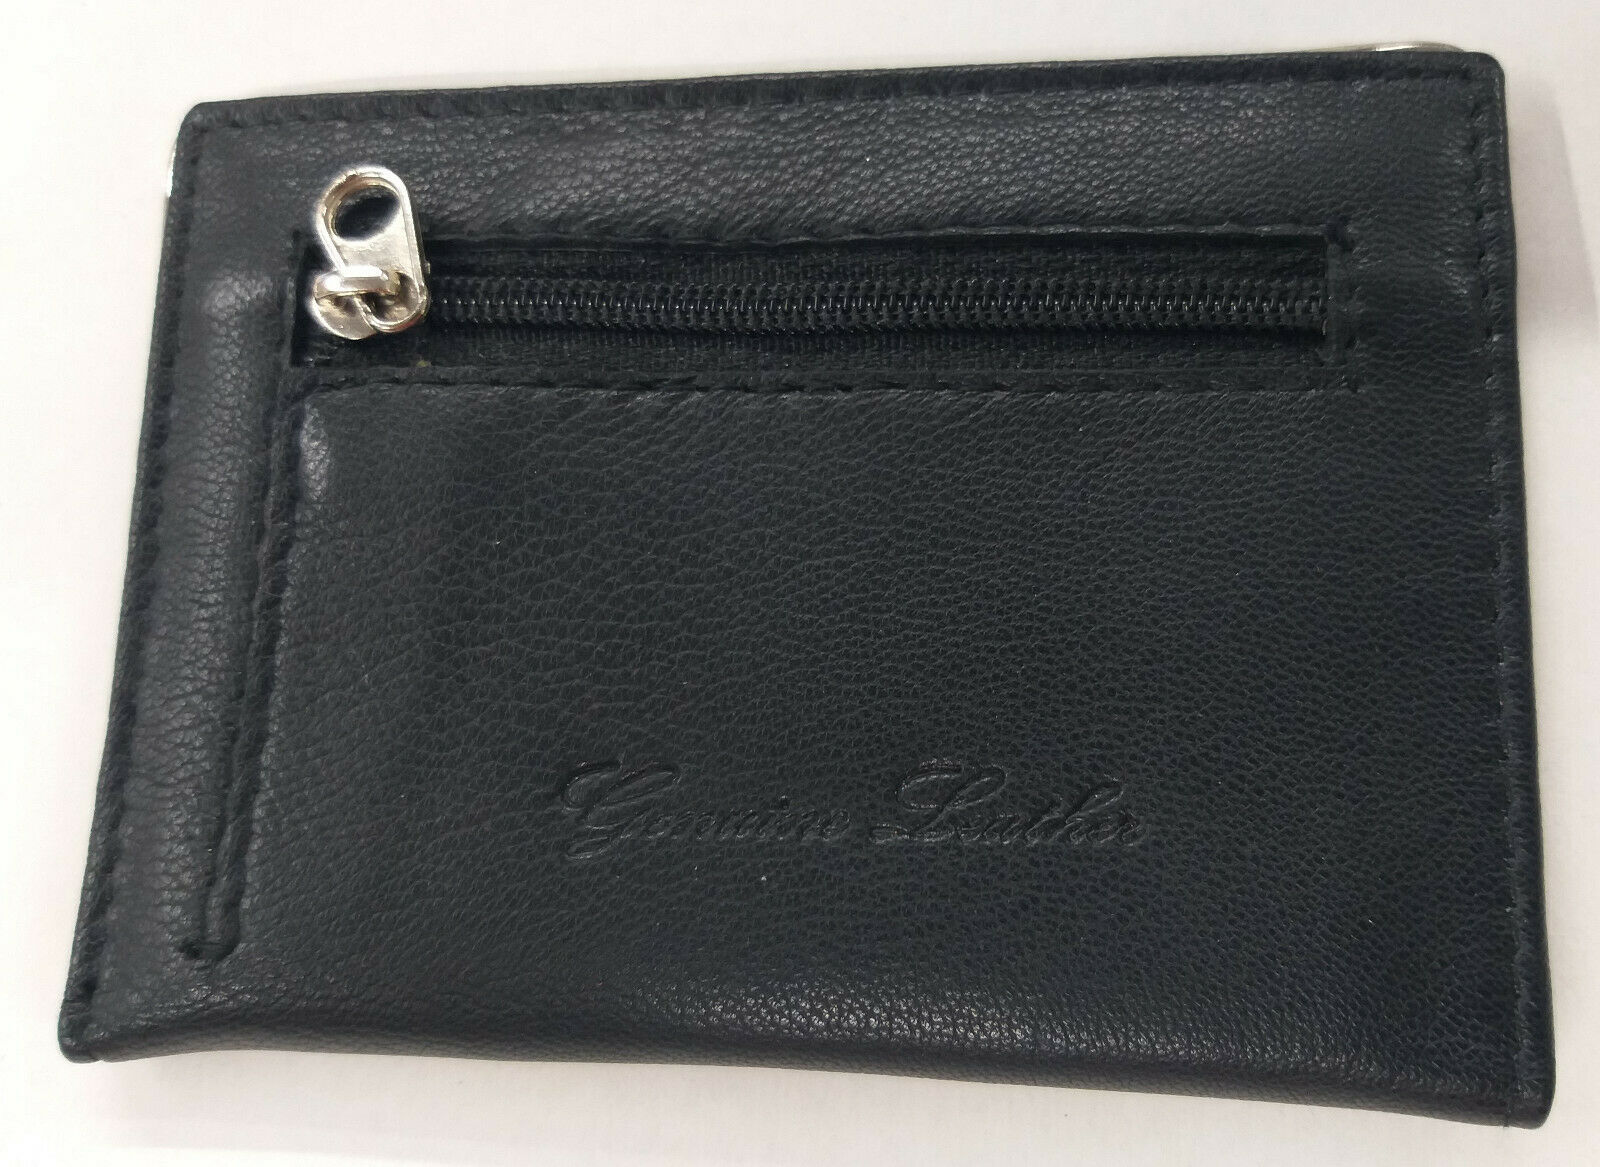 PURE Soft Leather Bus Pass travel card Wallet Holder with Zip Coin Pouch